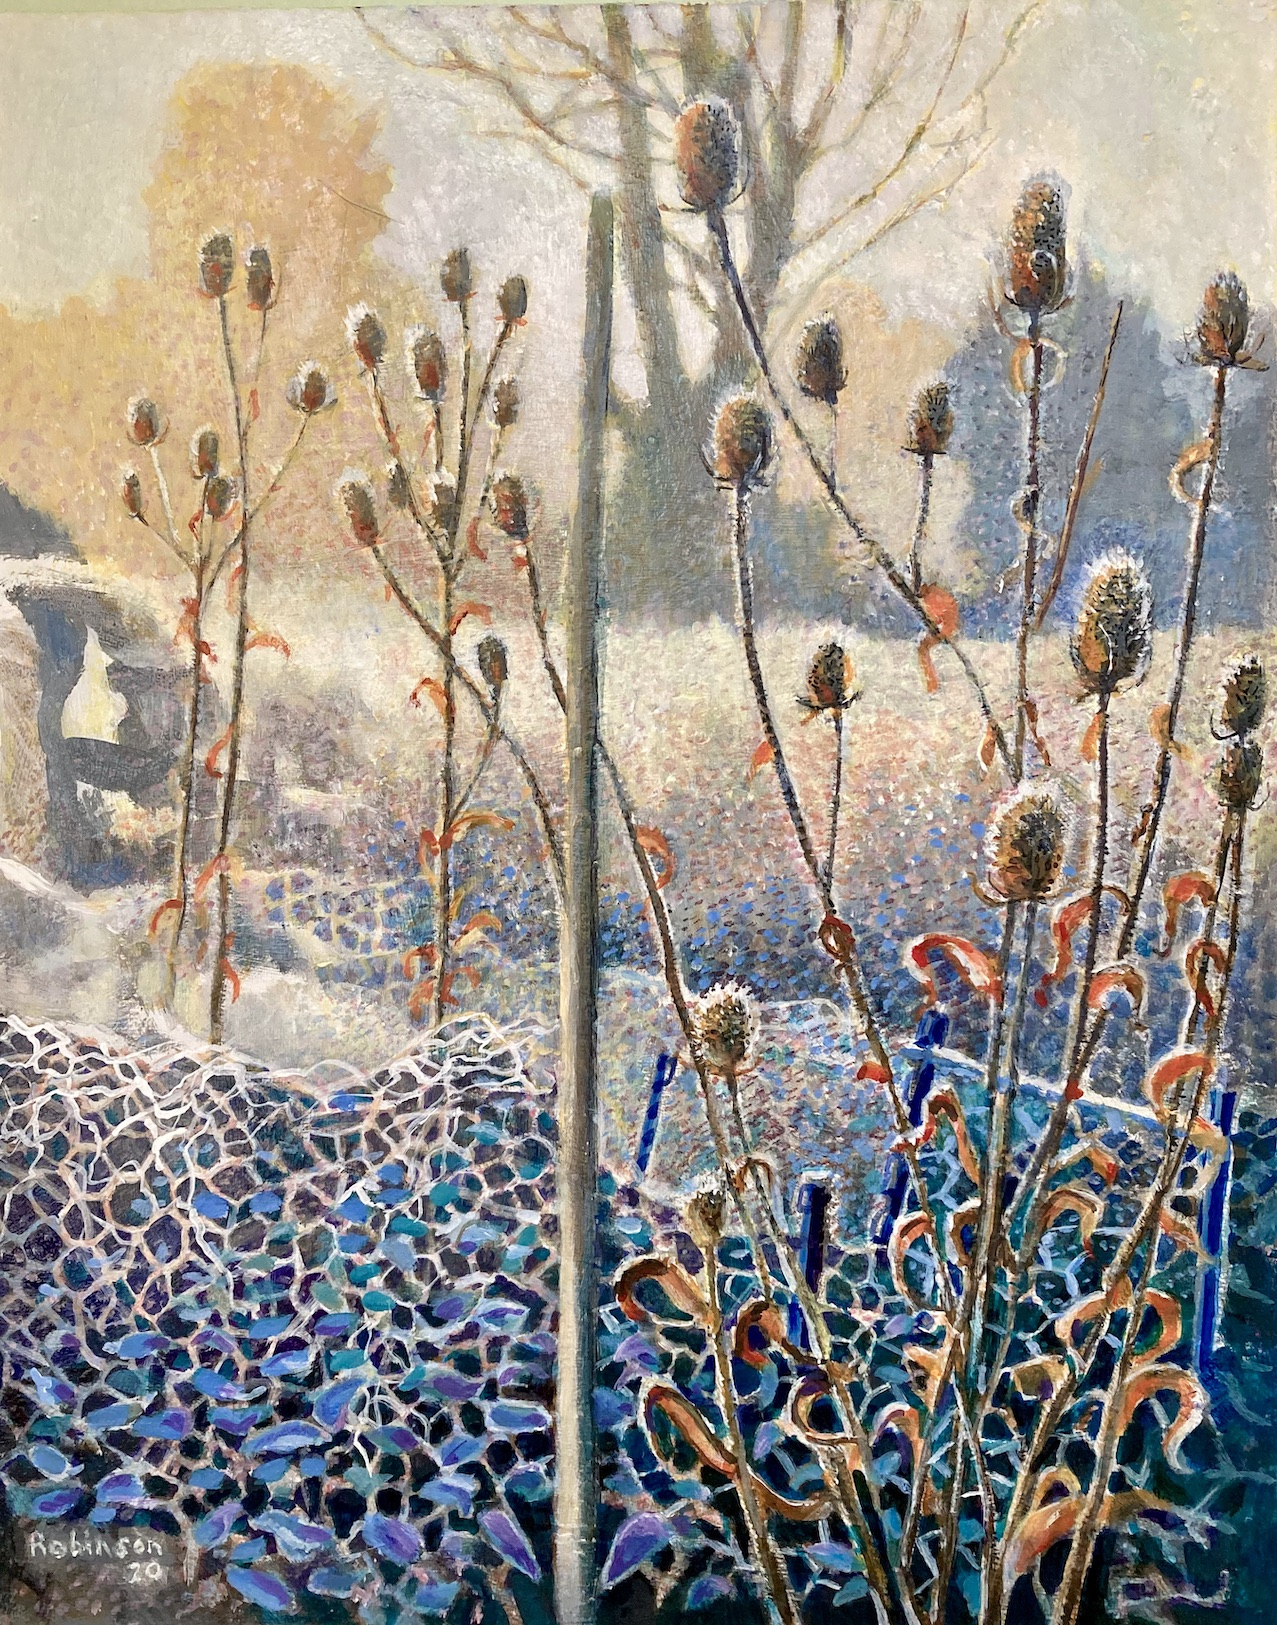 Early Sleet and Teasels acrylic on canvas 2020